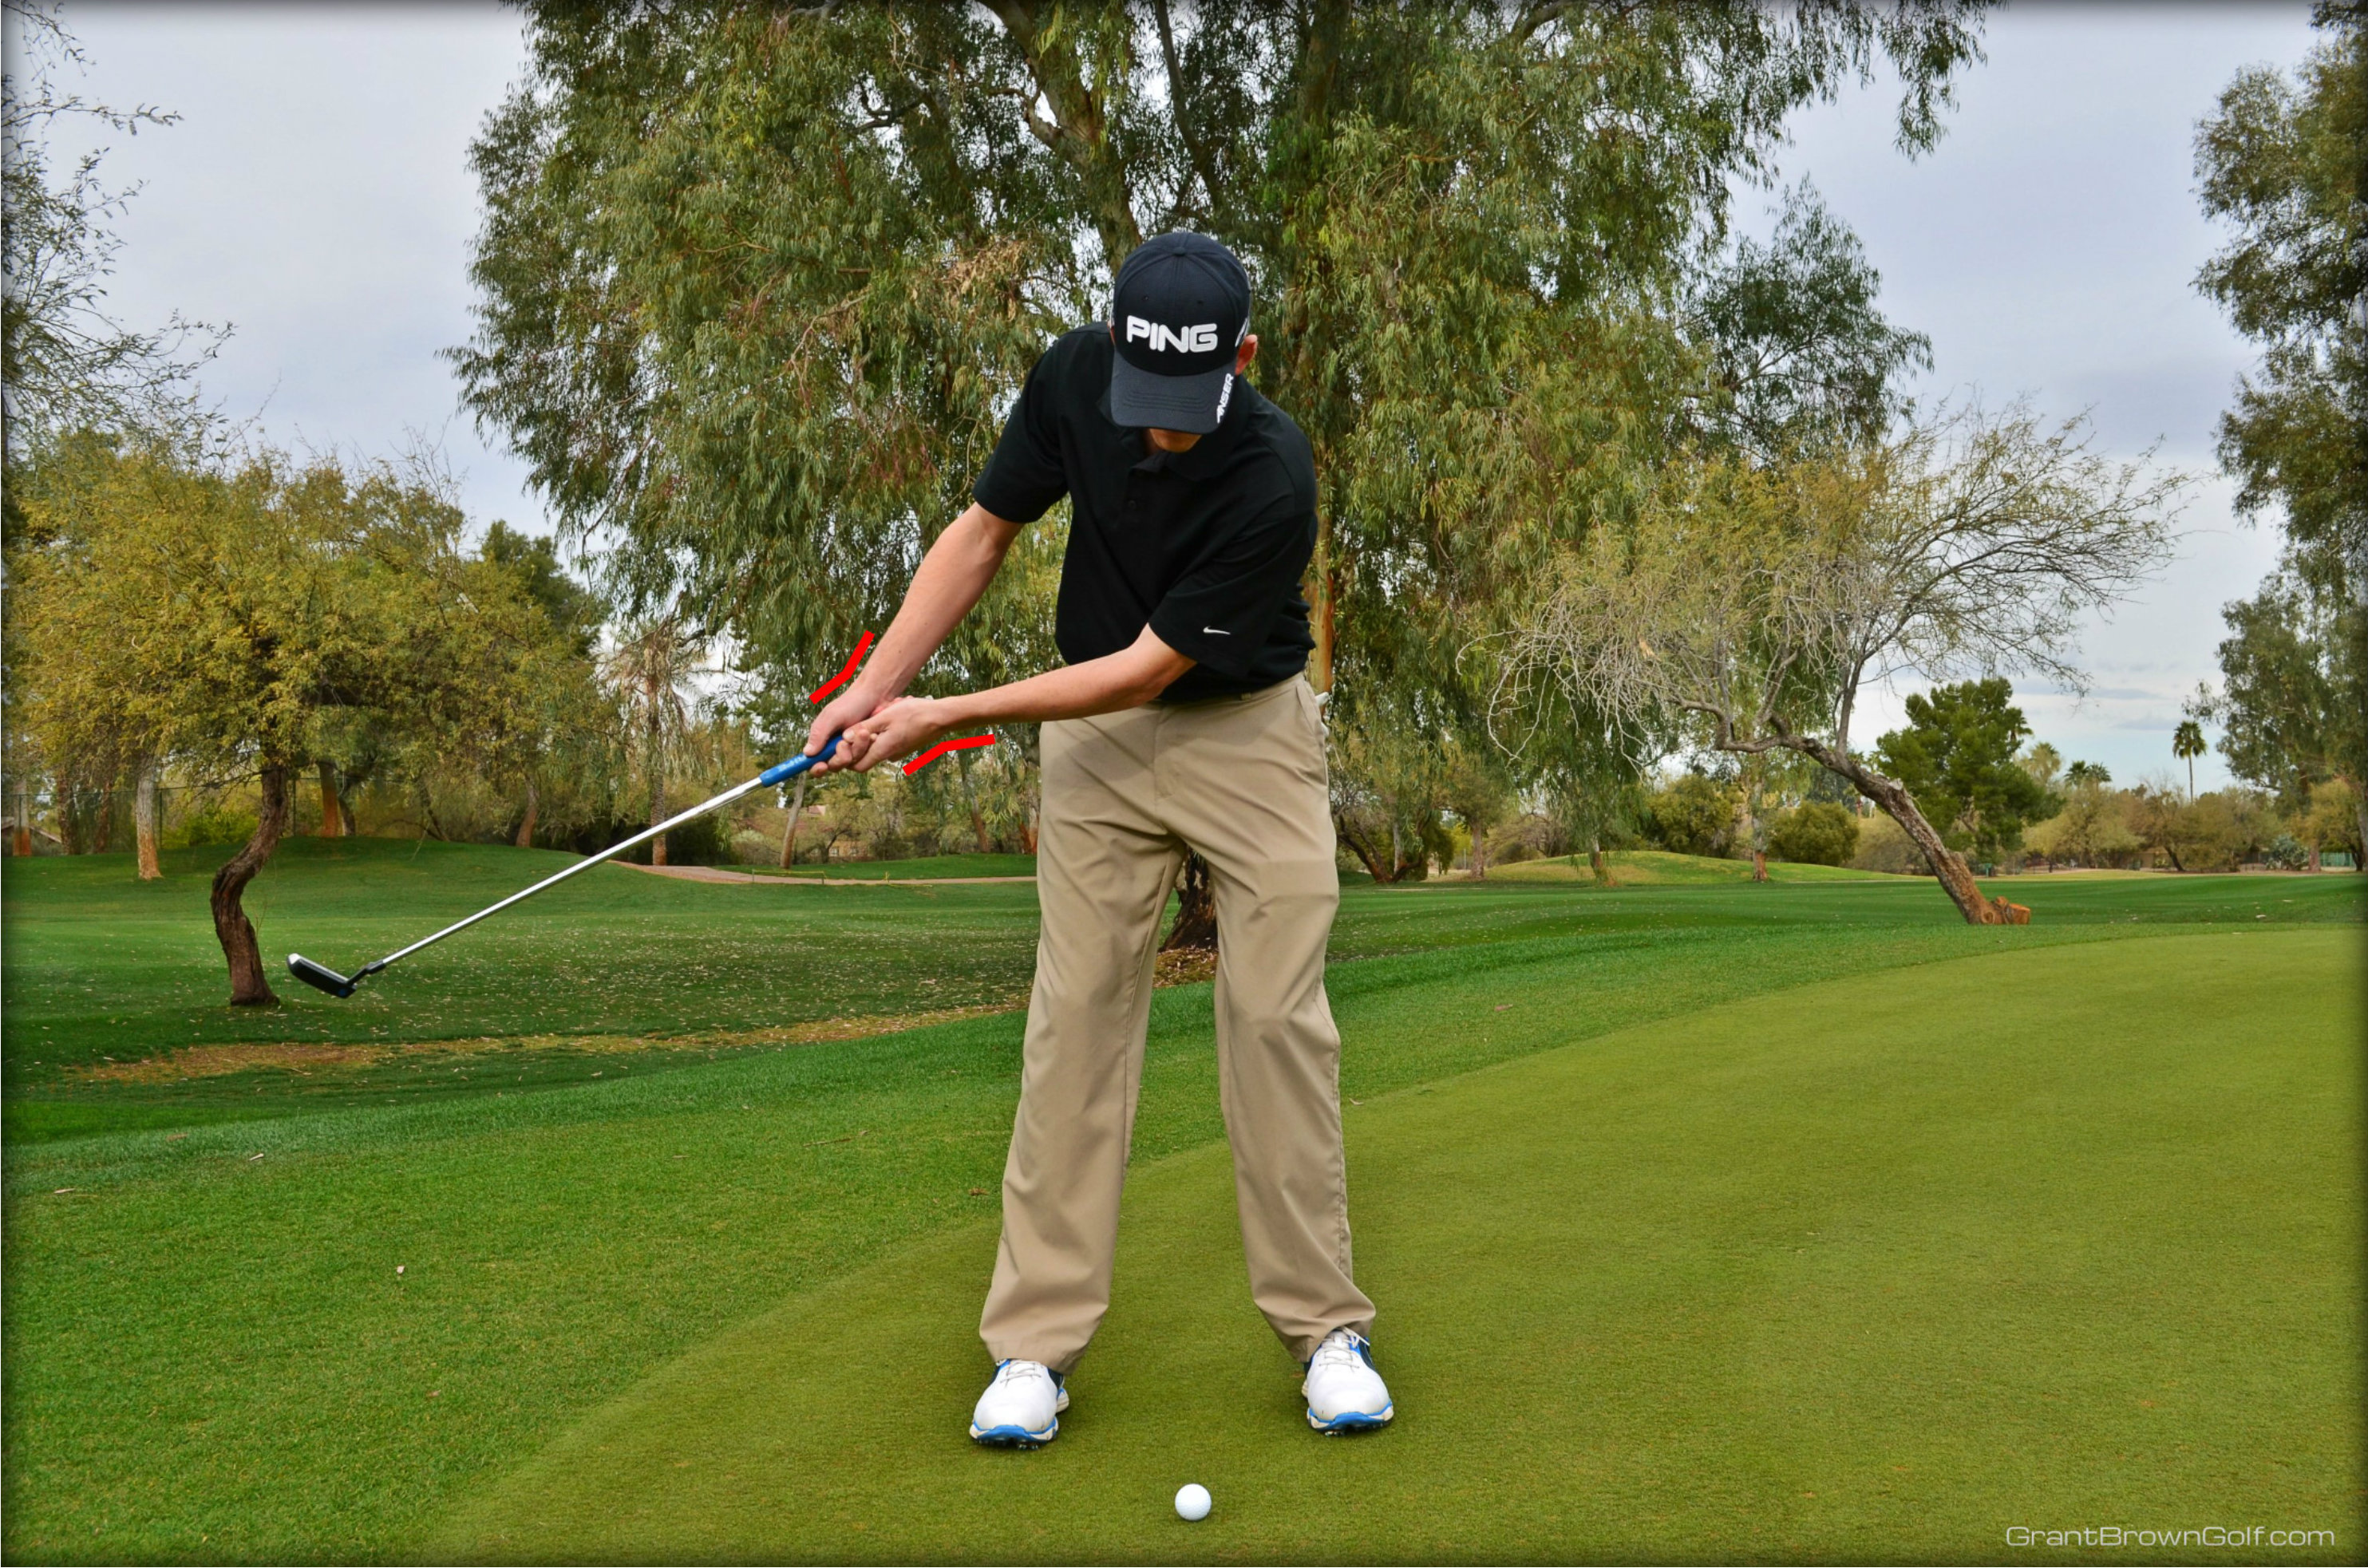 Long Putts: How much wrist action is right for you? - Grant Brown Golf